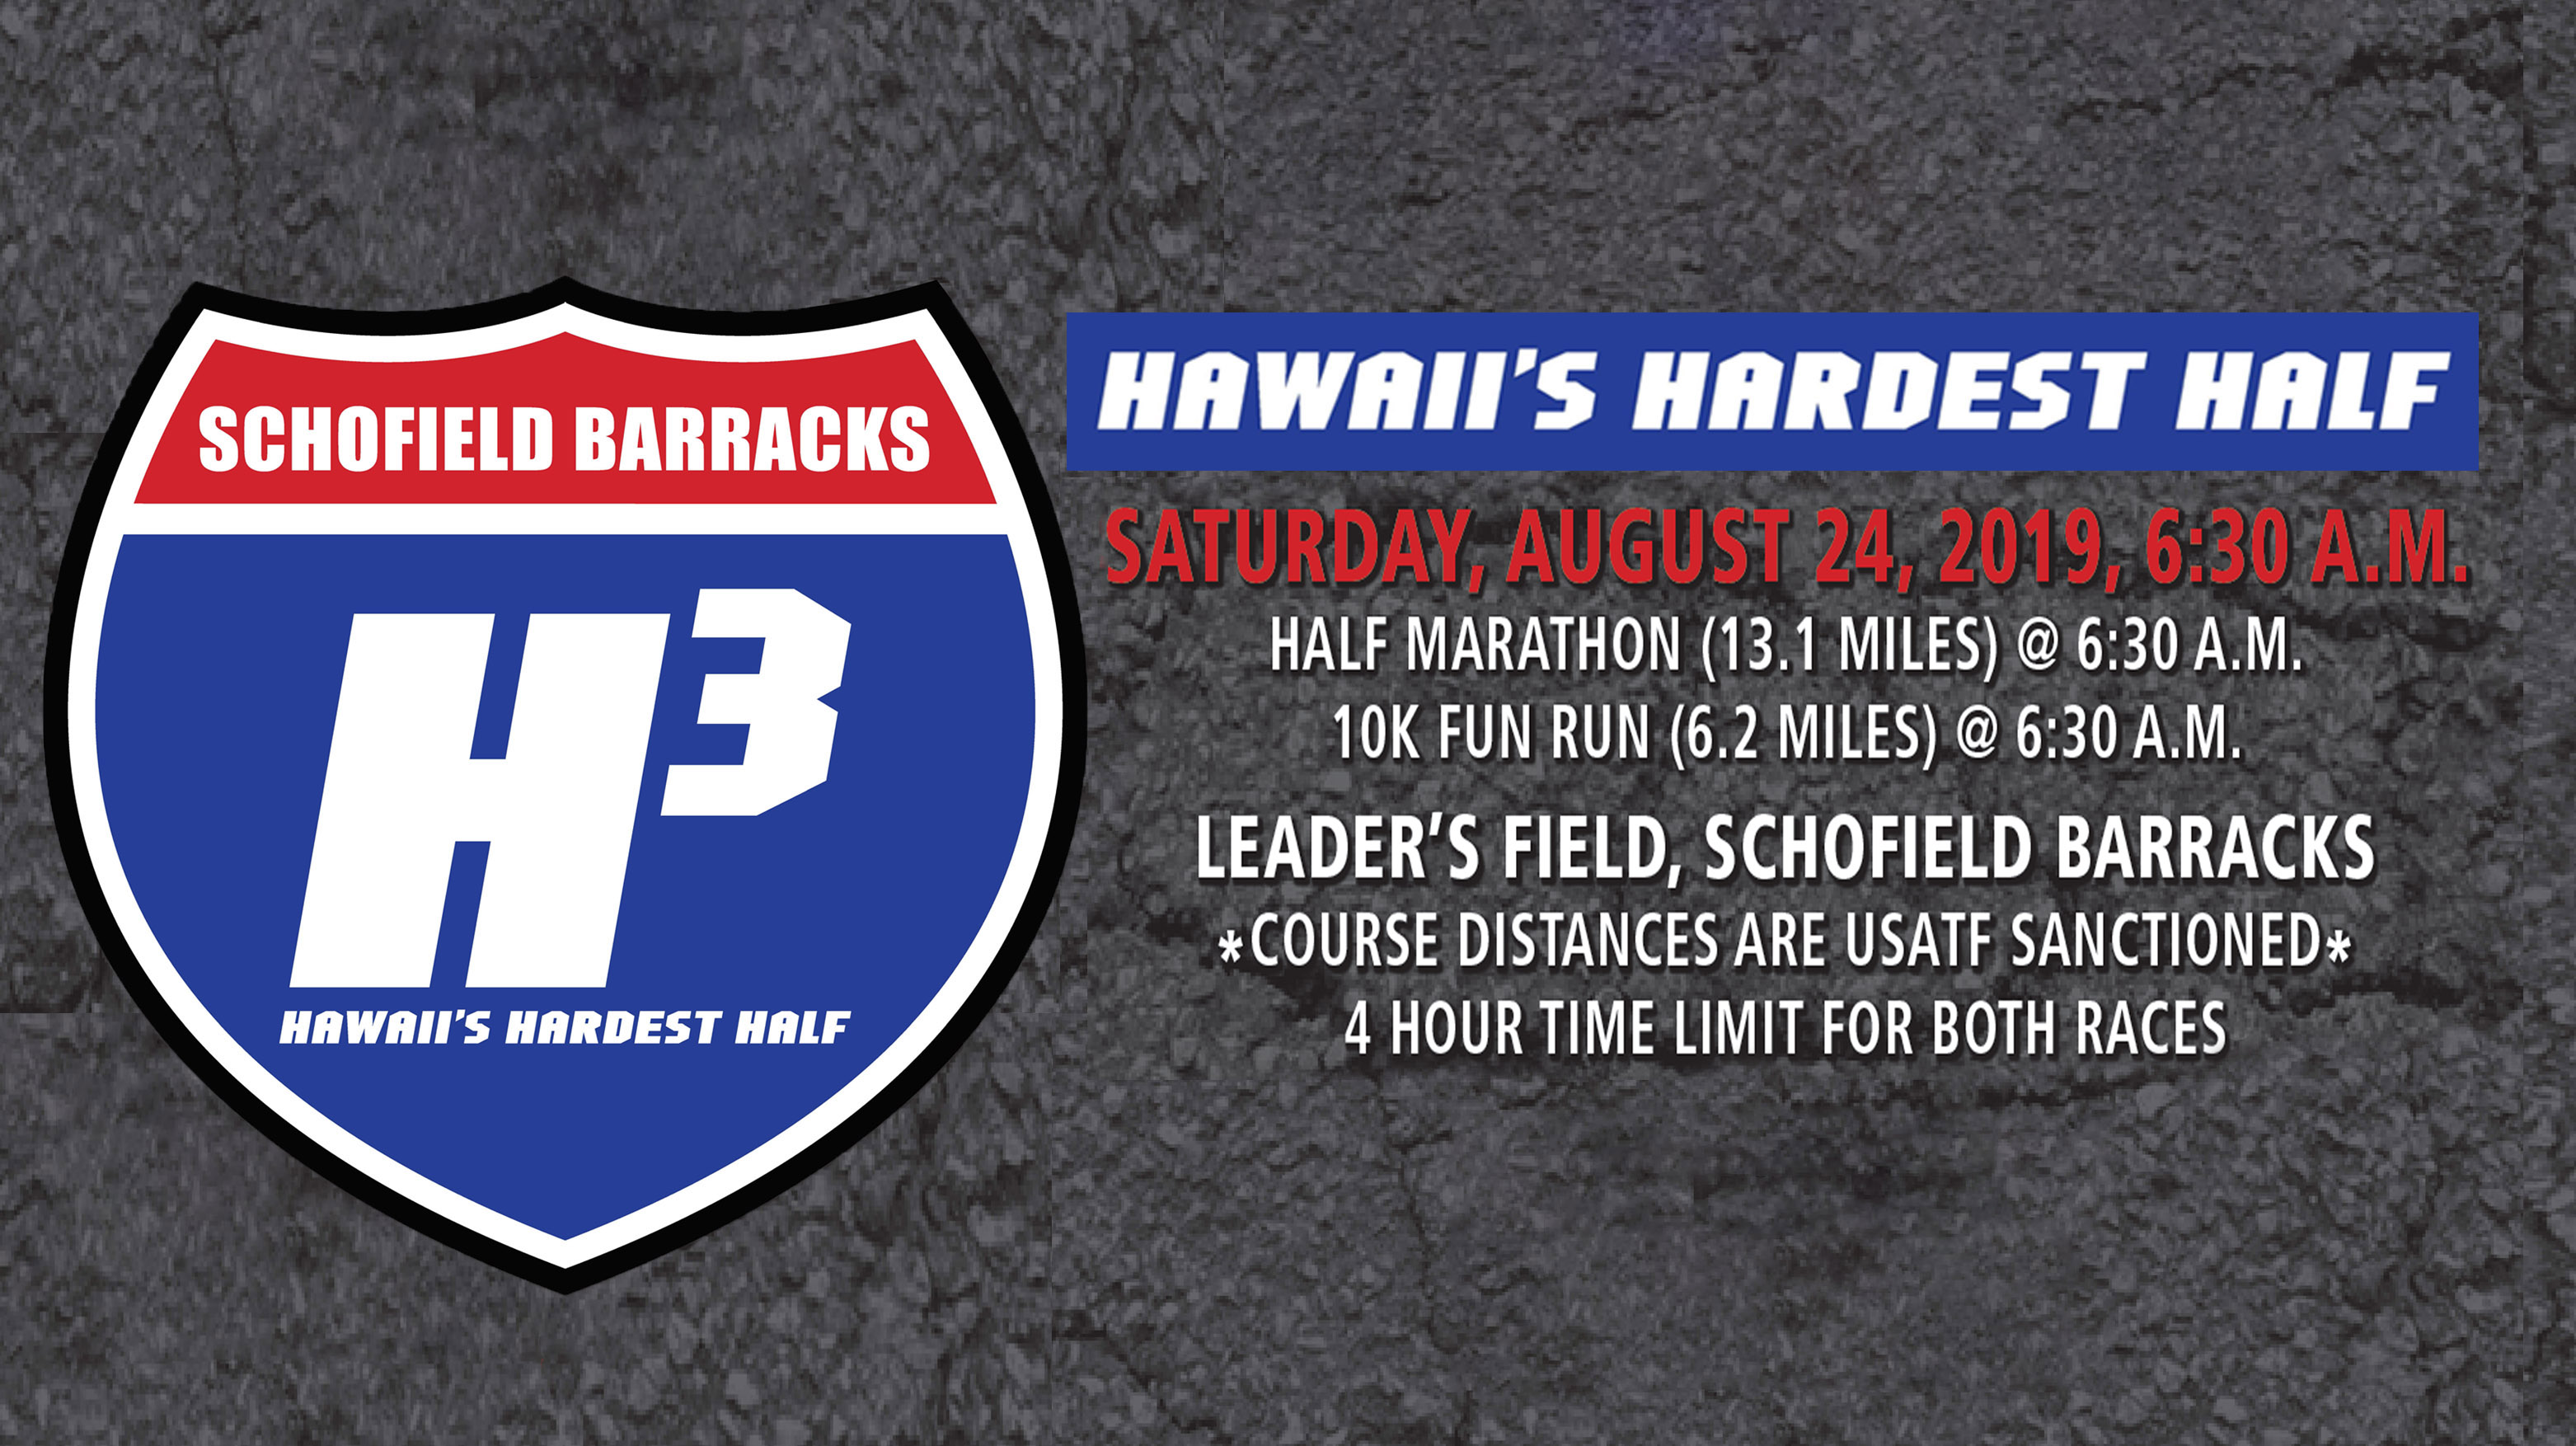 Hawaii's Hardest Half Race